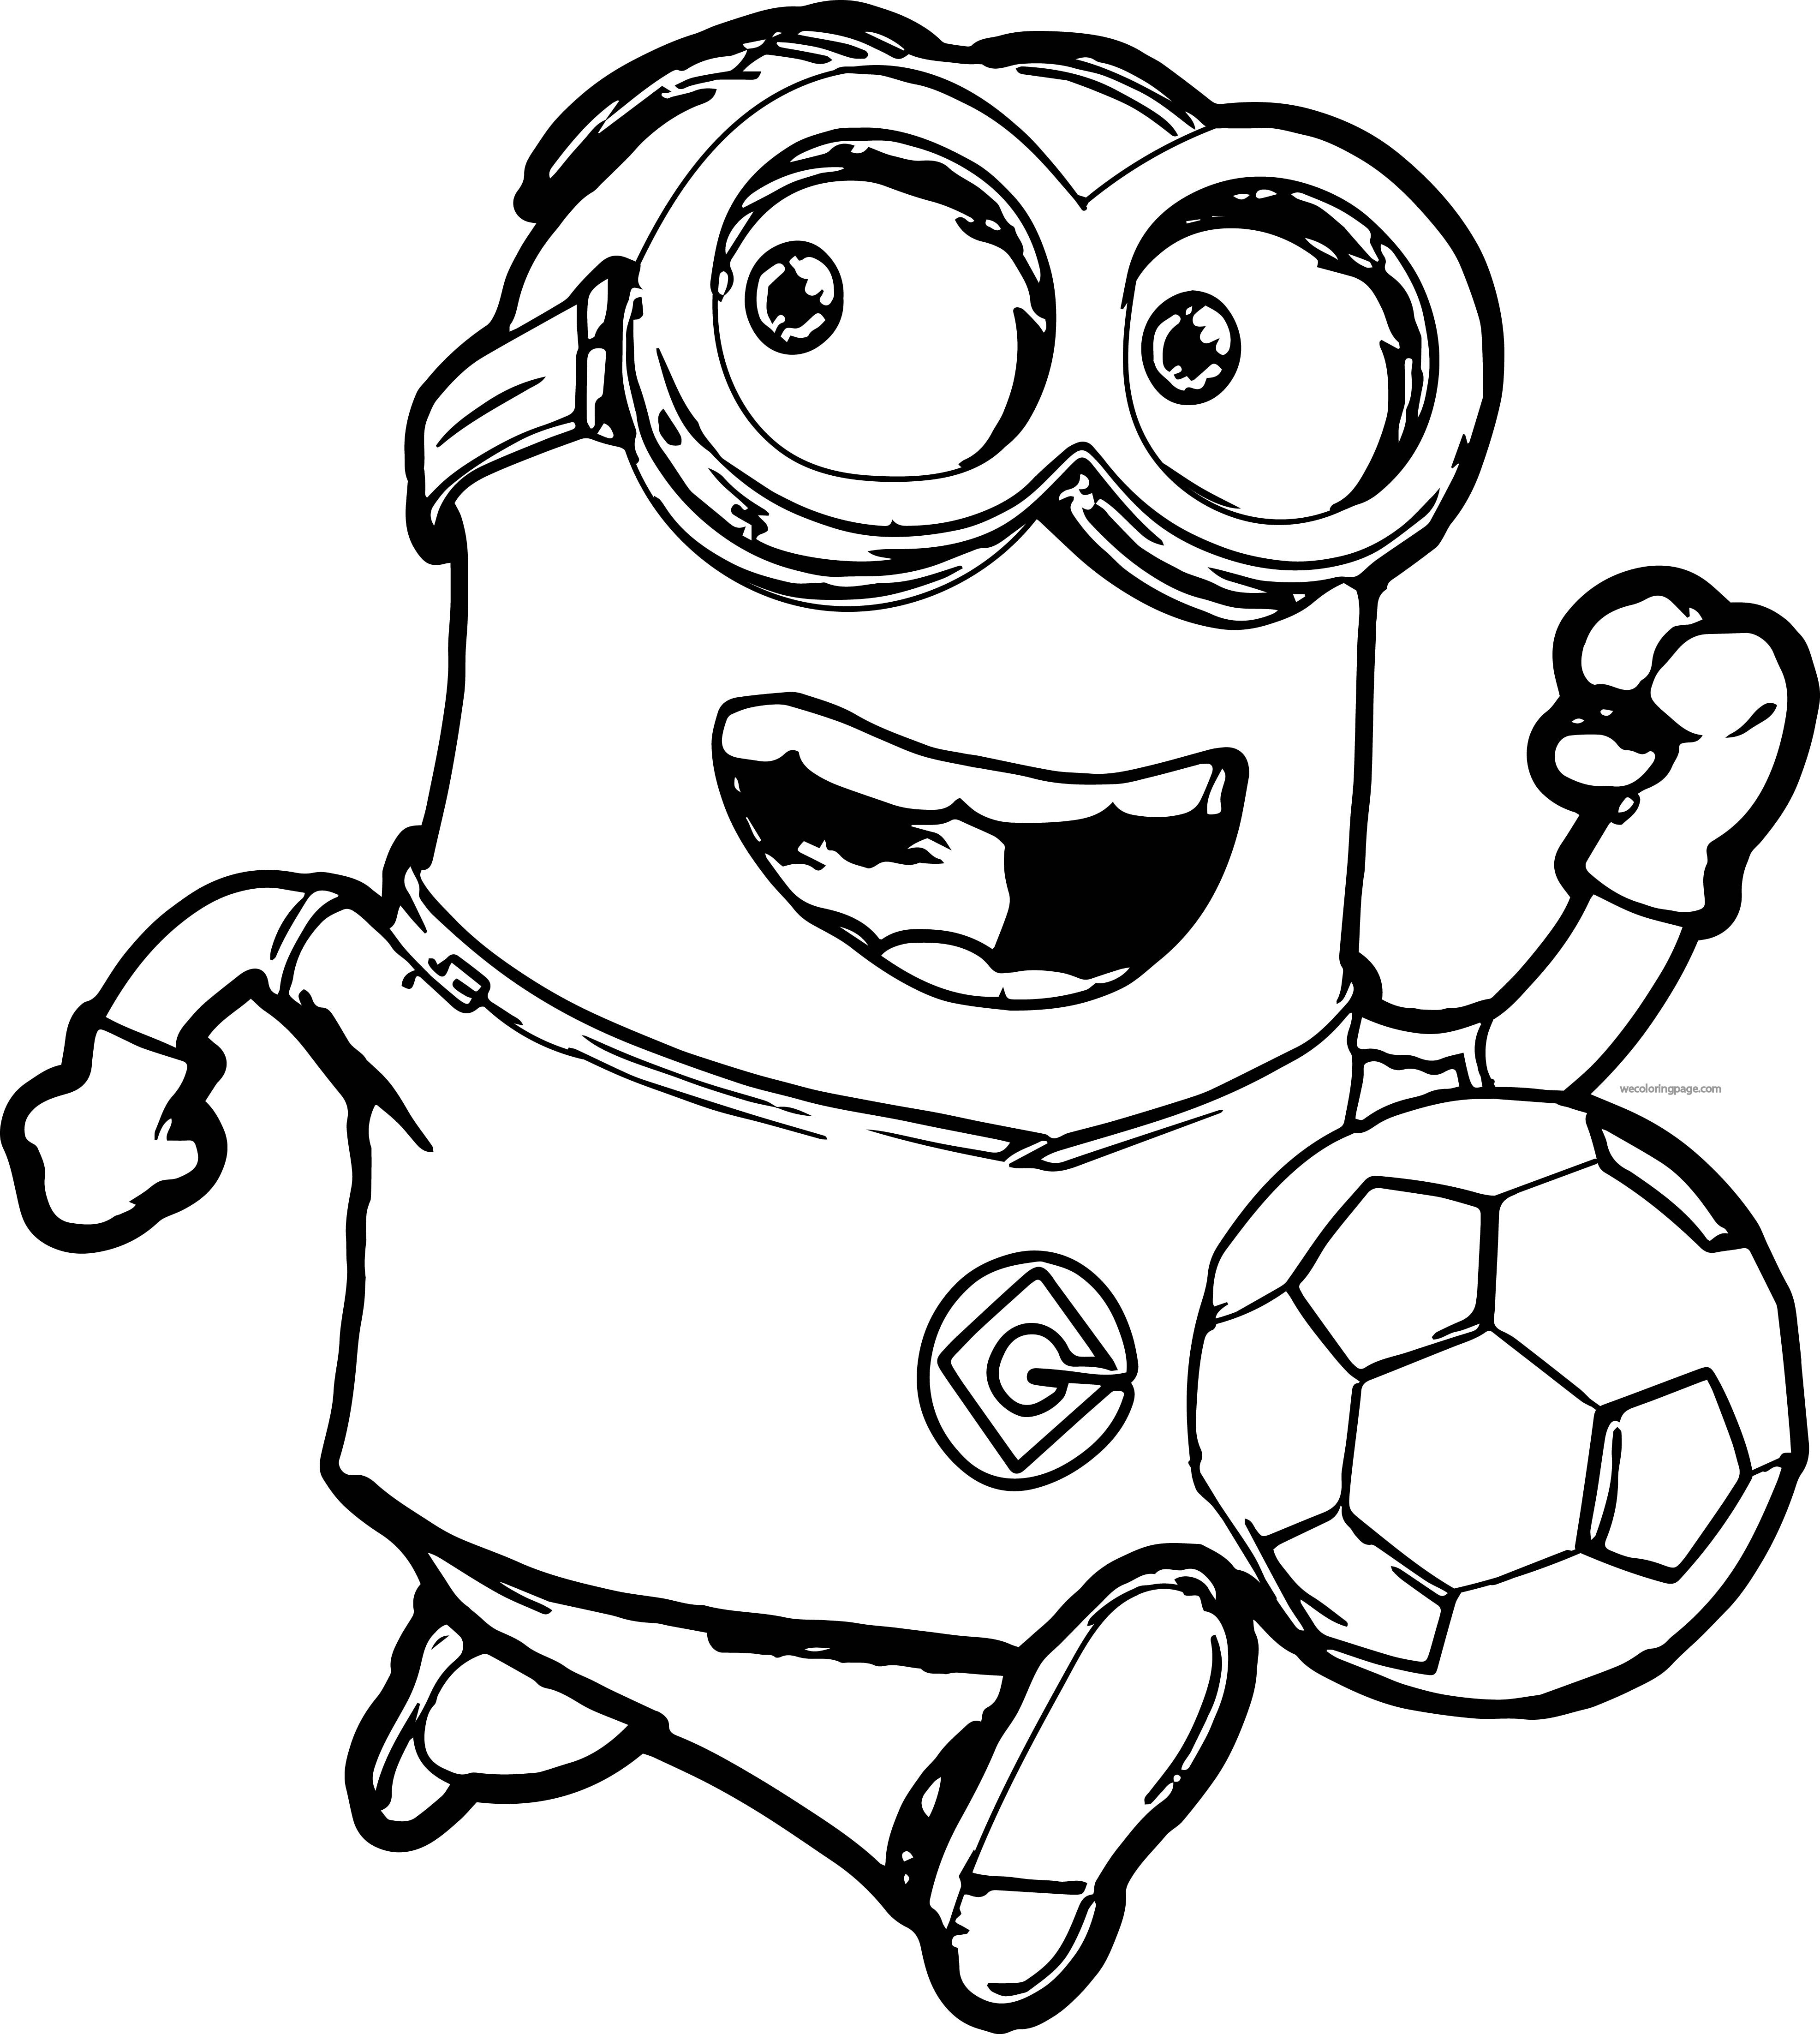 3945x4408 Best Of Soccer Player Coloring Pages Printable